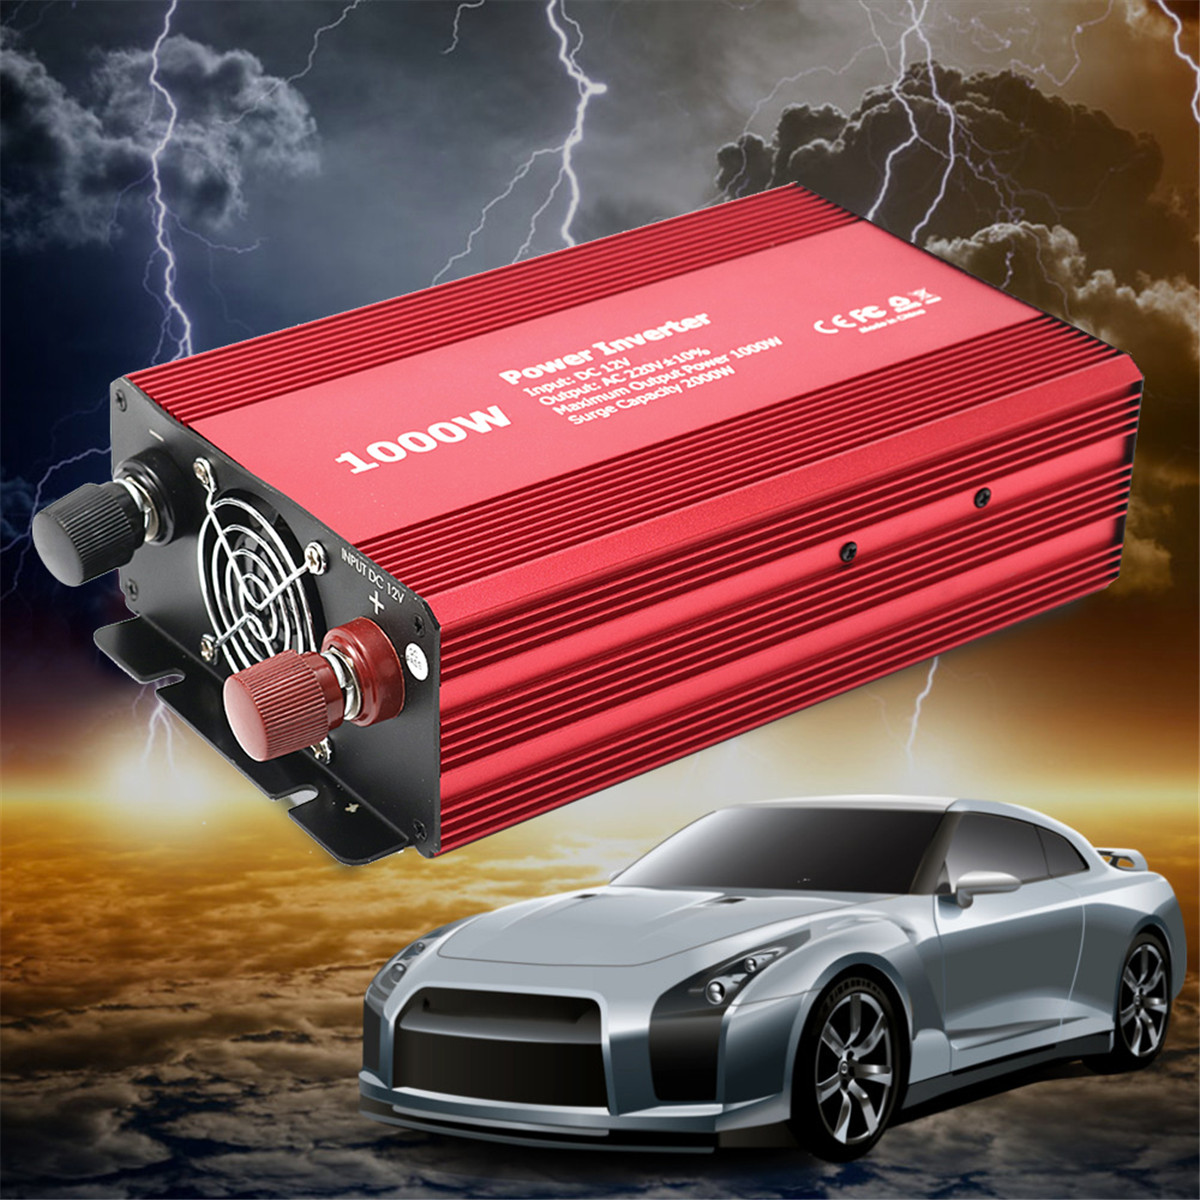 1000W Car Auto Power Inverter 12V DC to 220V AC Charger Supply Converter Adapter